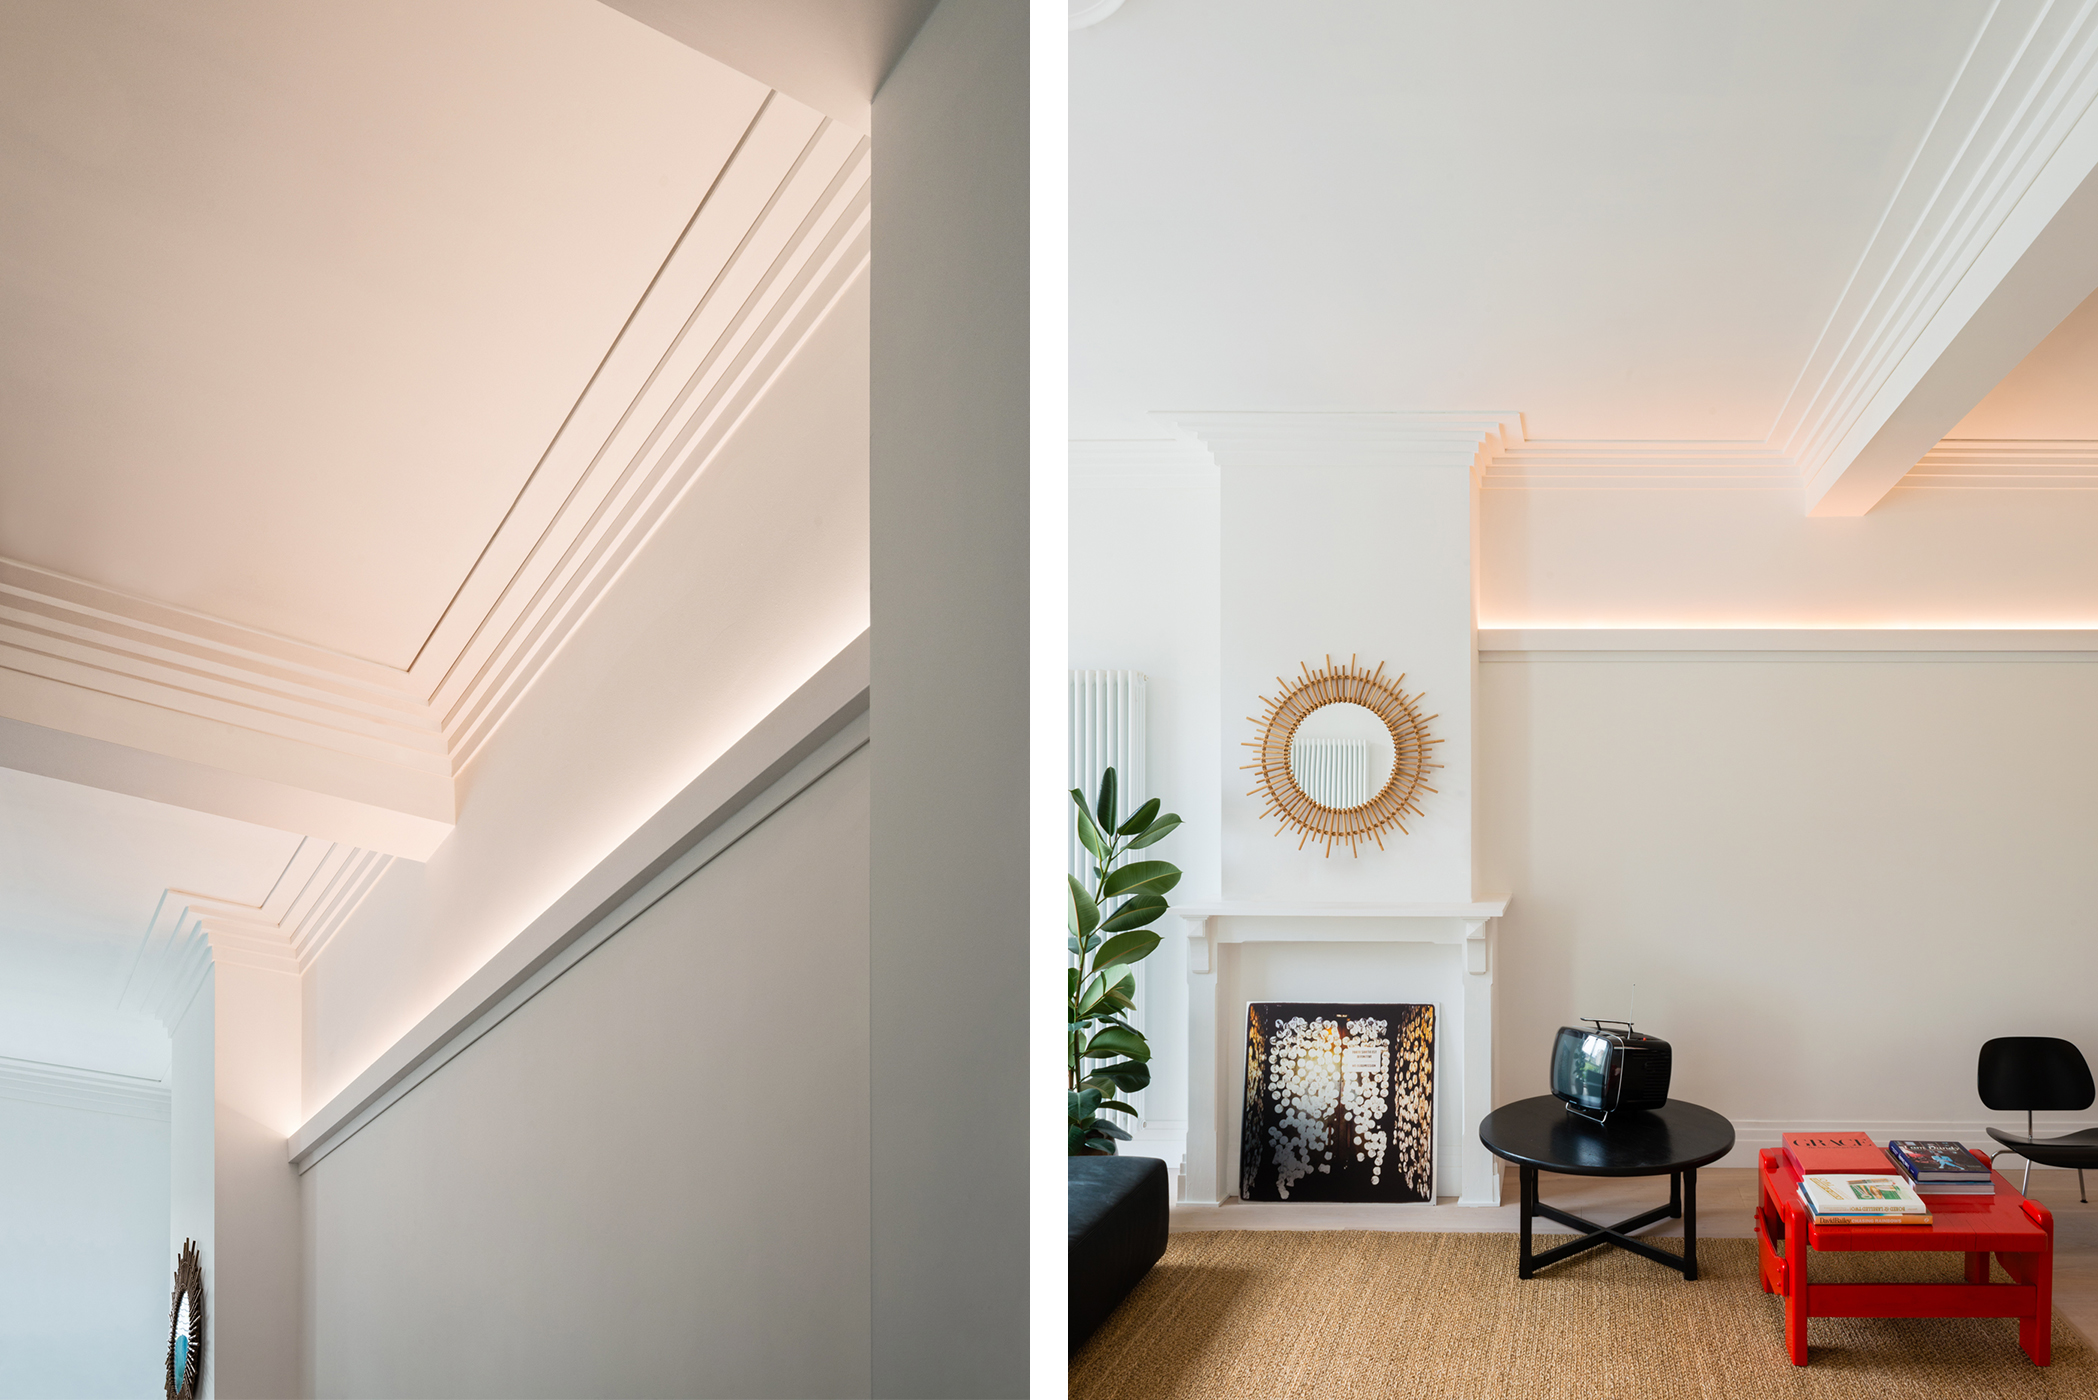 Ceiling coving with a concealed indirect lighting